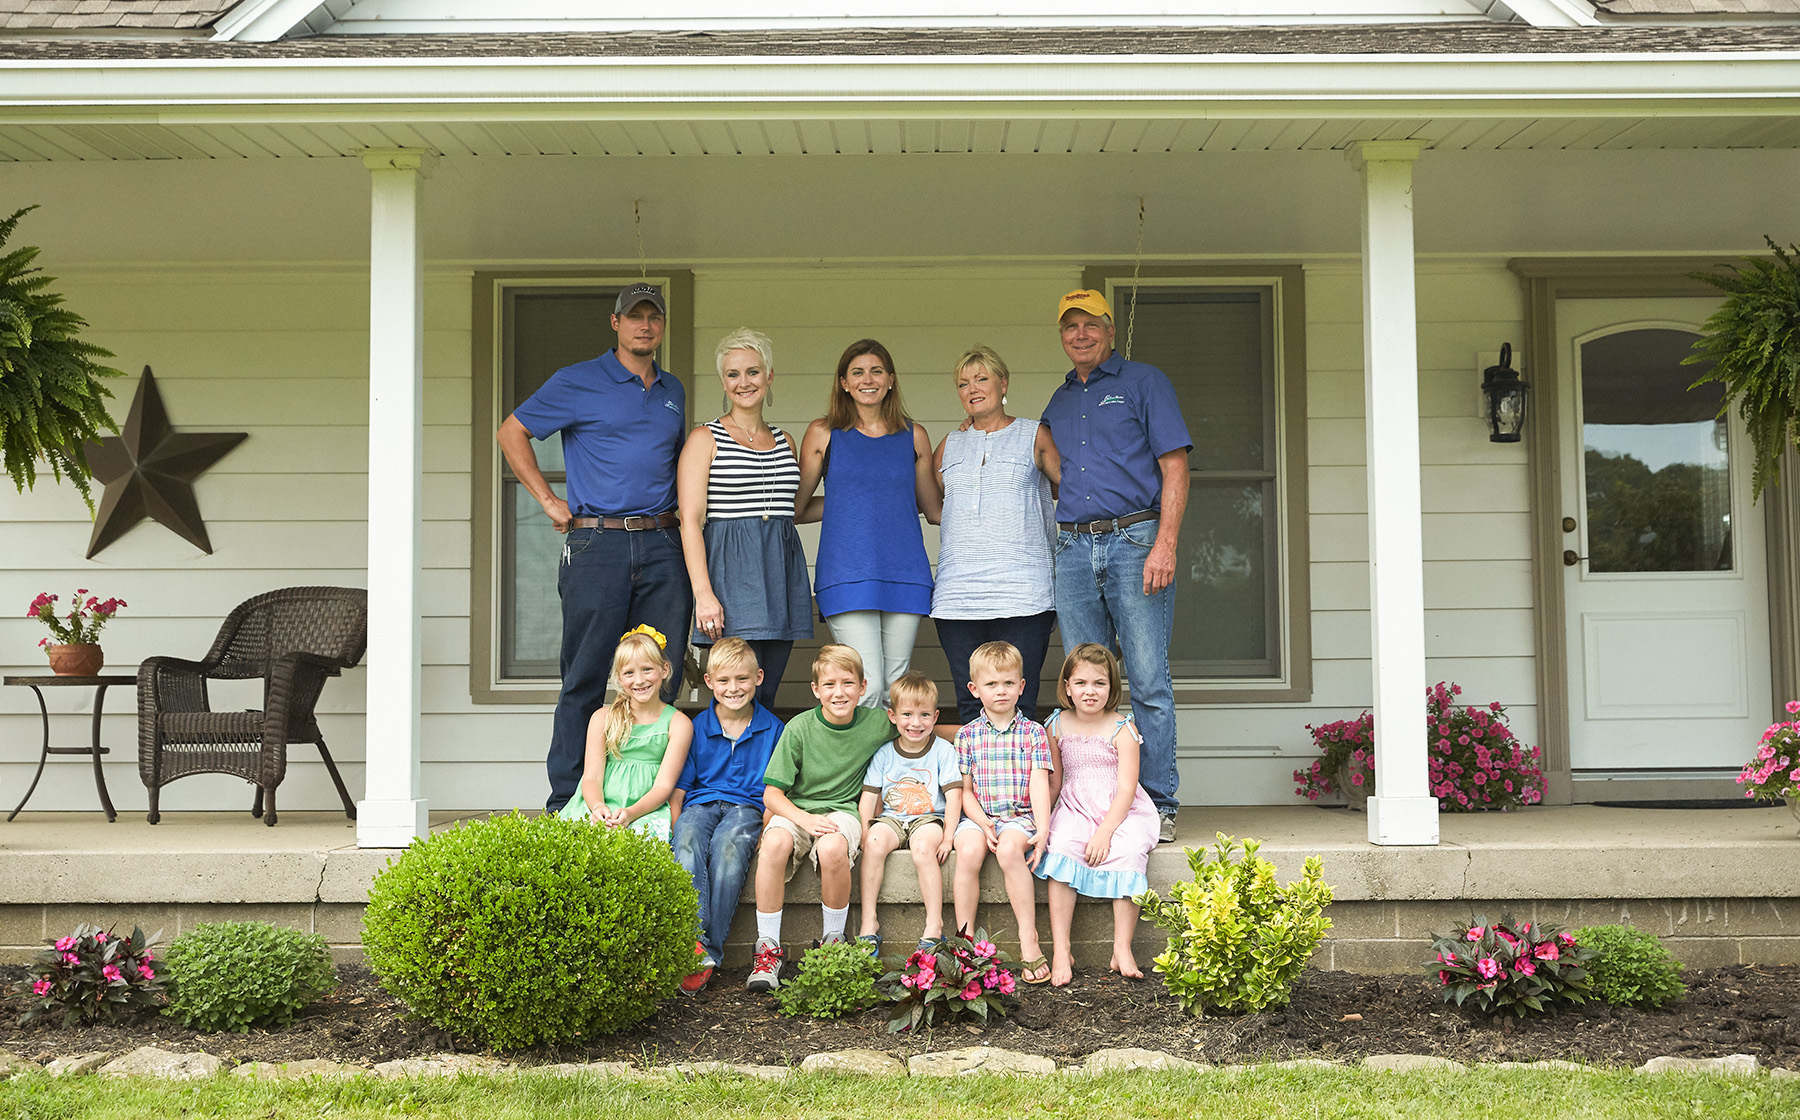 Image of Gelfius Family Farms Growers for Red Gold Tomatoes from Hartsville Indiana standing on front porch